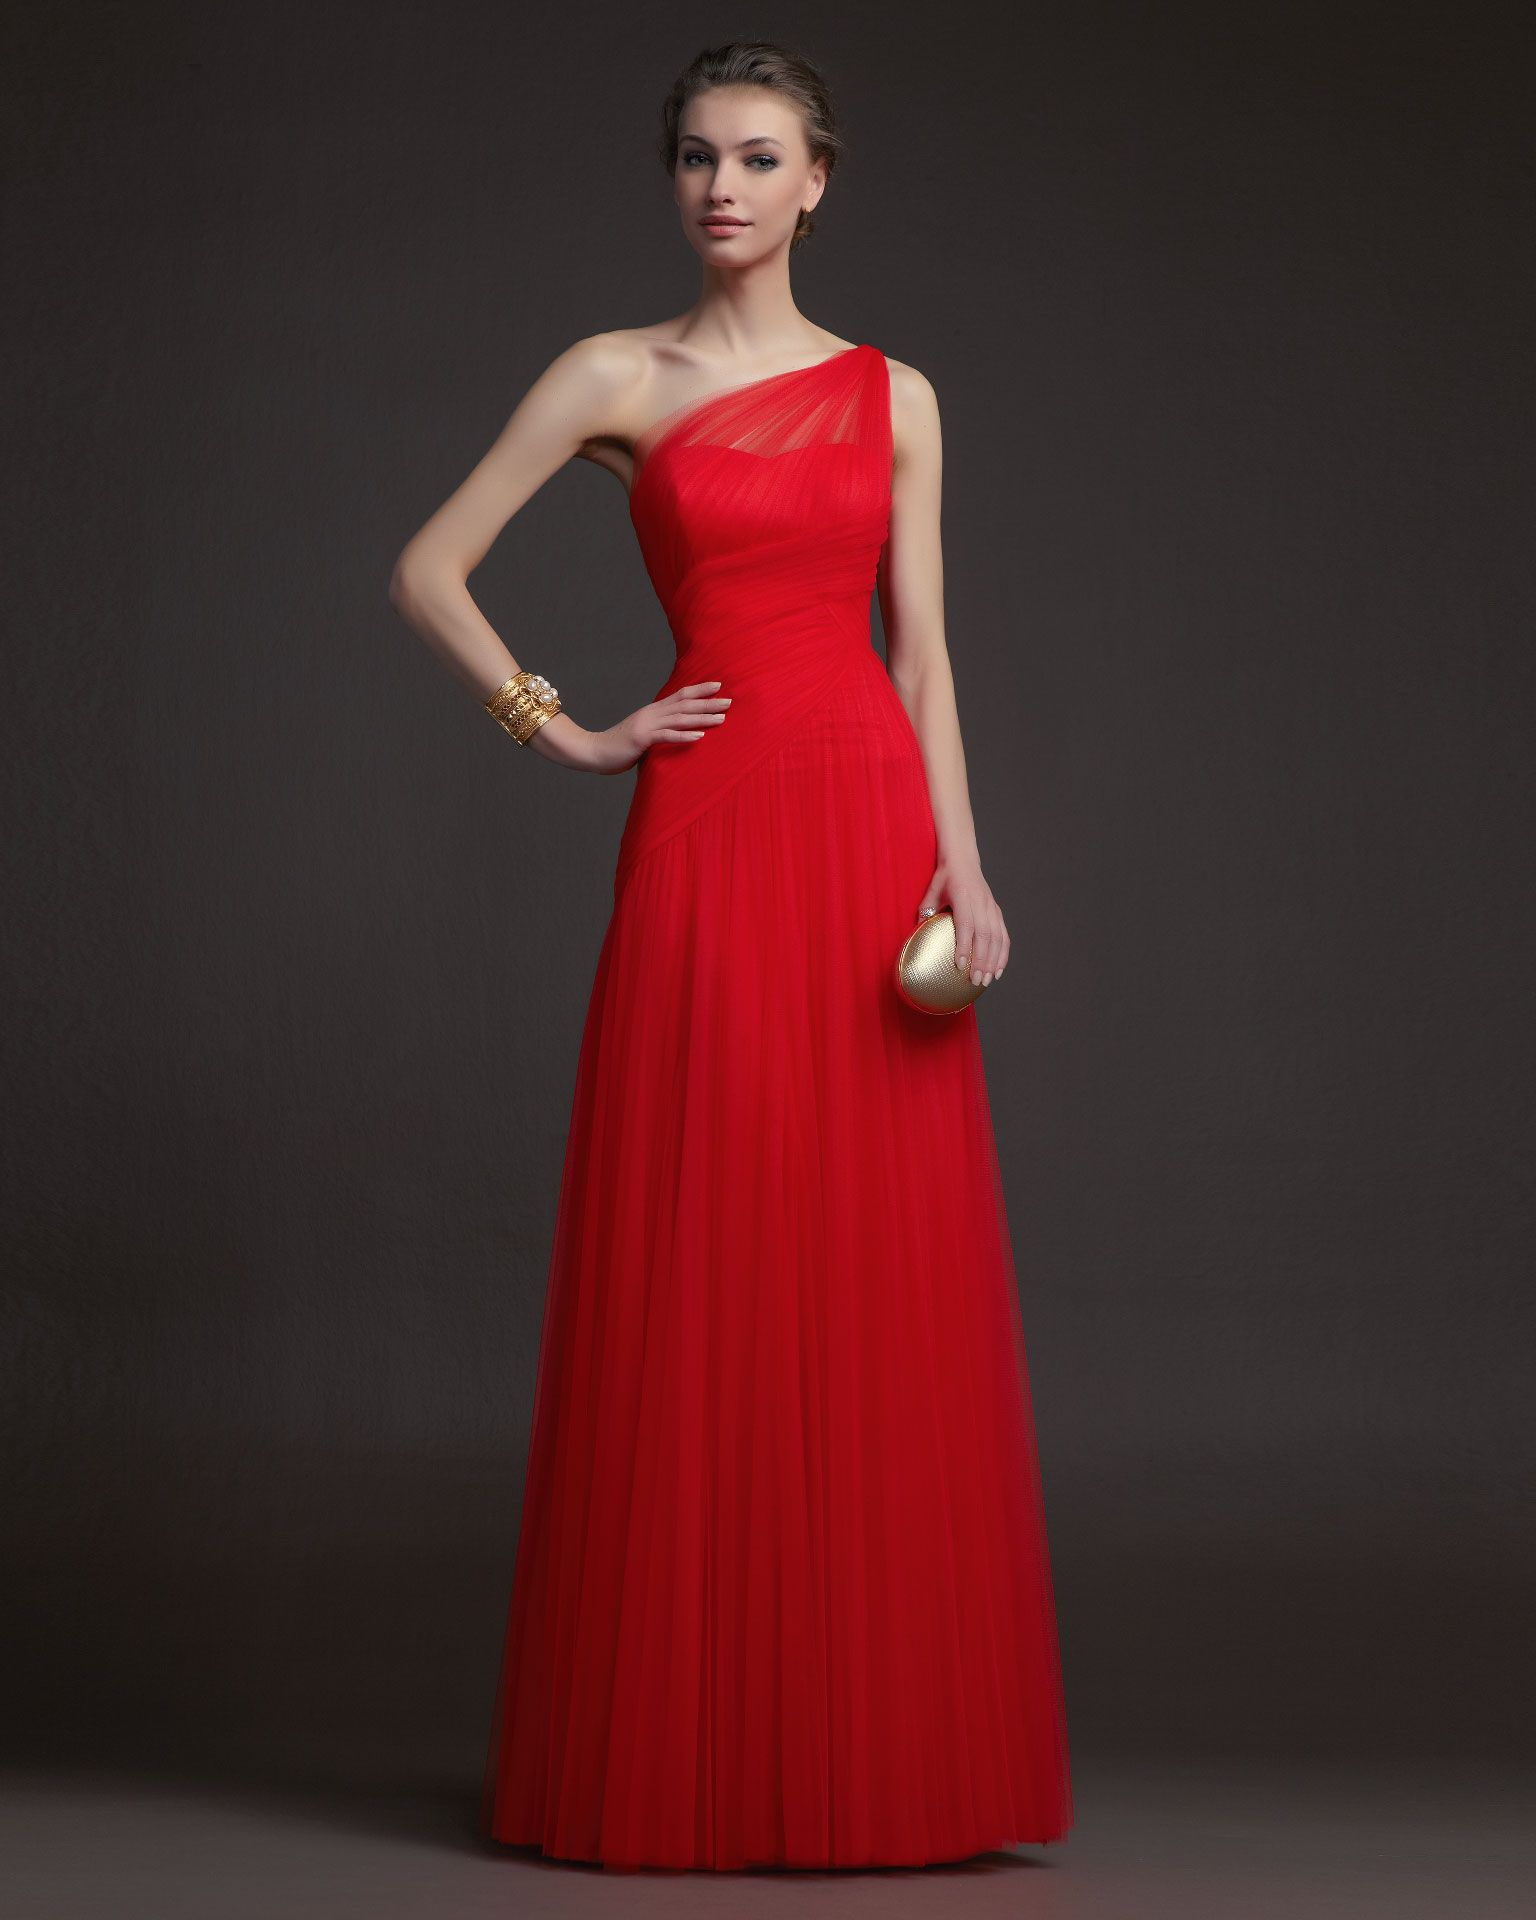 af6219dc5 Gorgeous 2014 Bridesmaid Dresses from Aire Barcelona red notched sweetheart